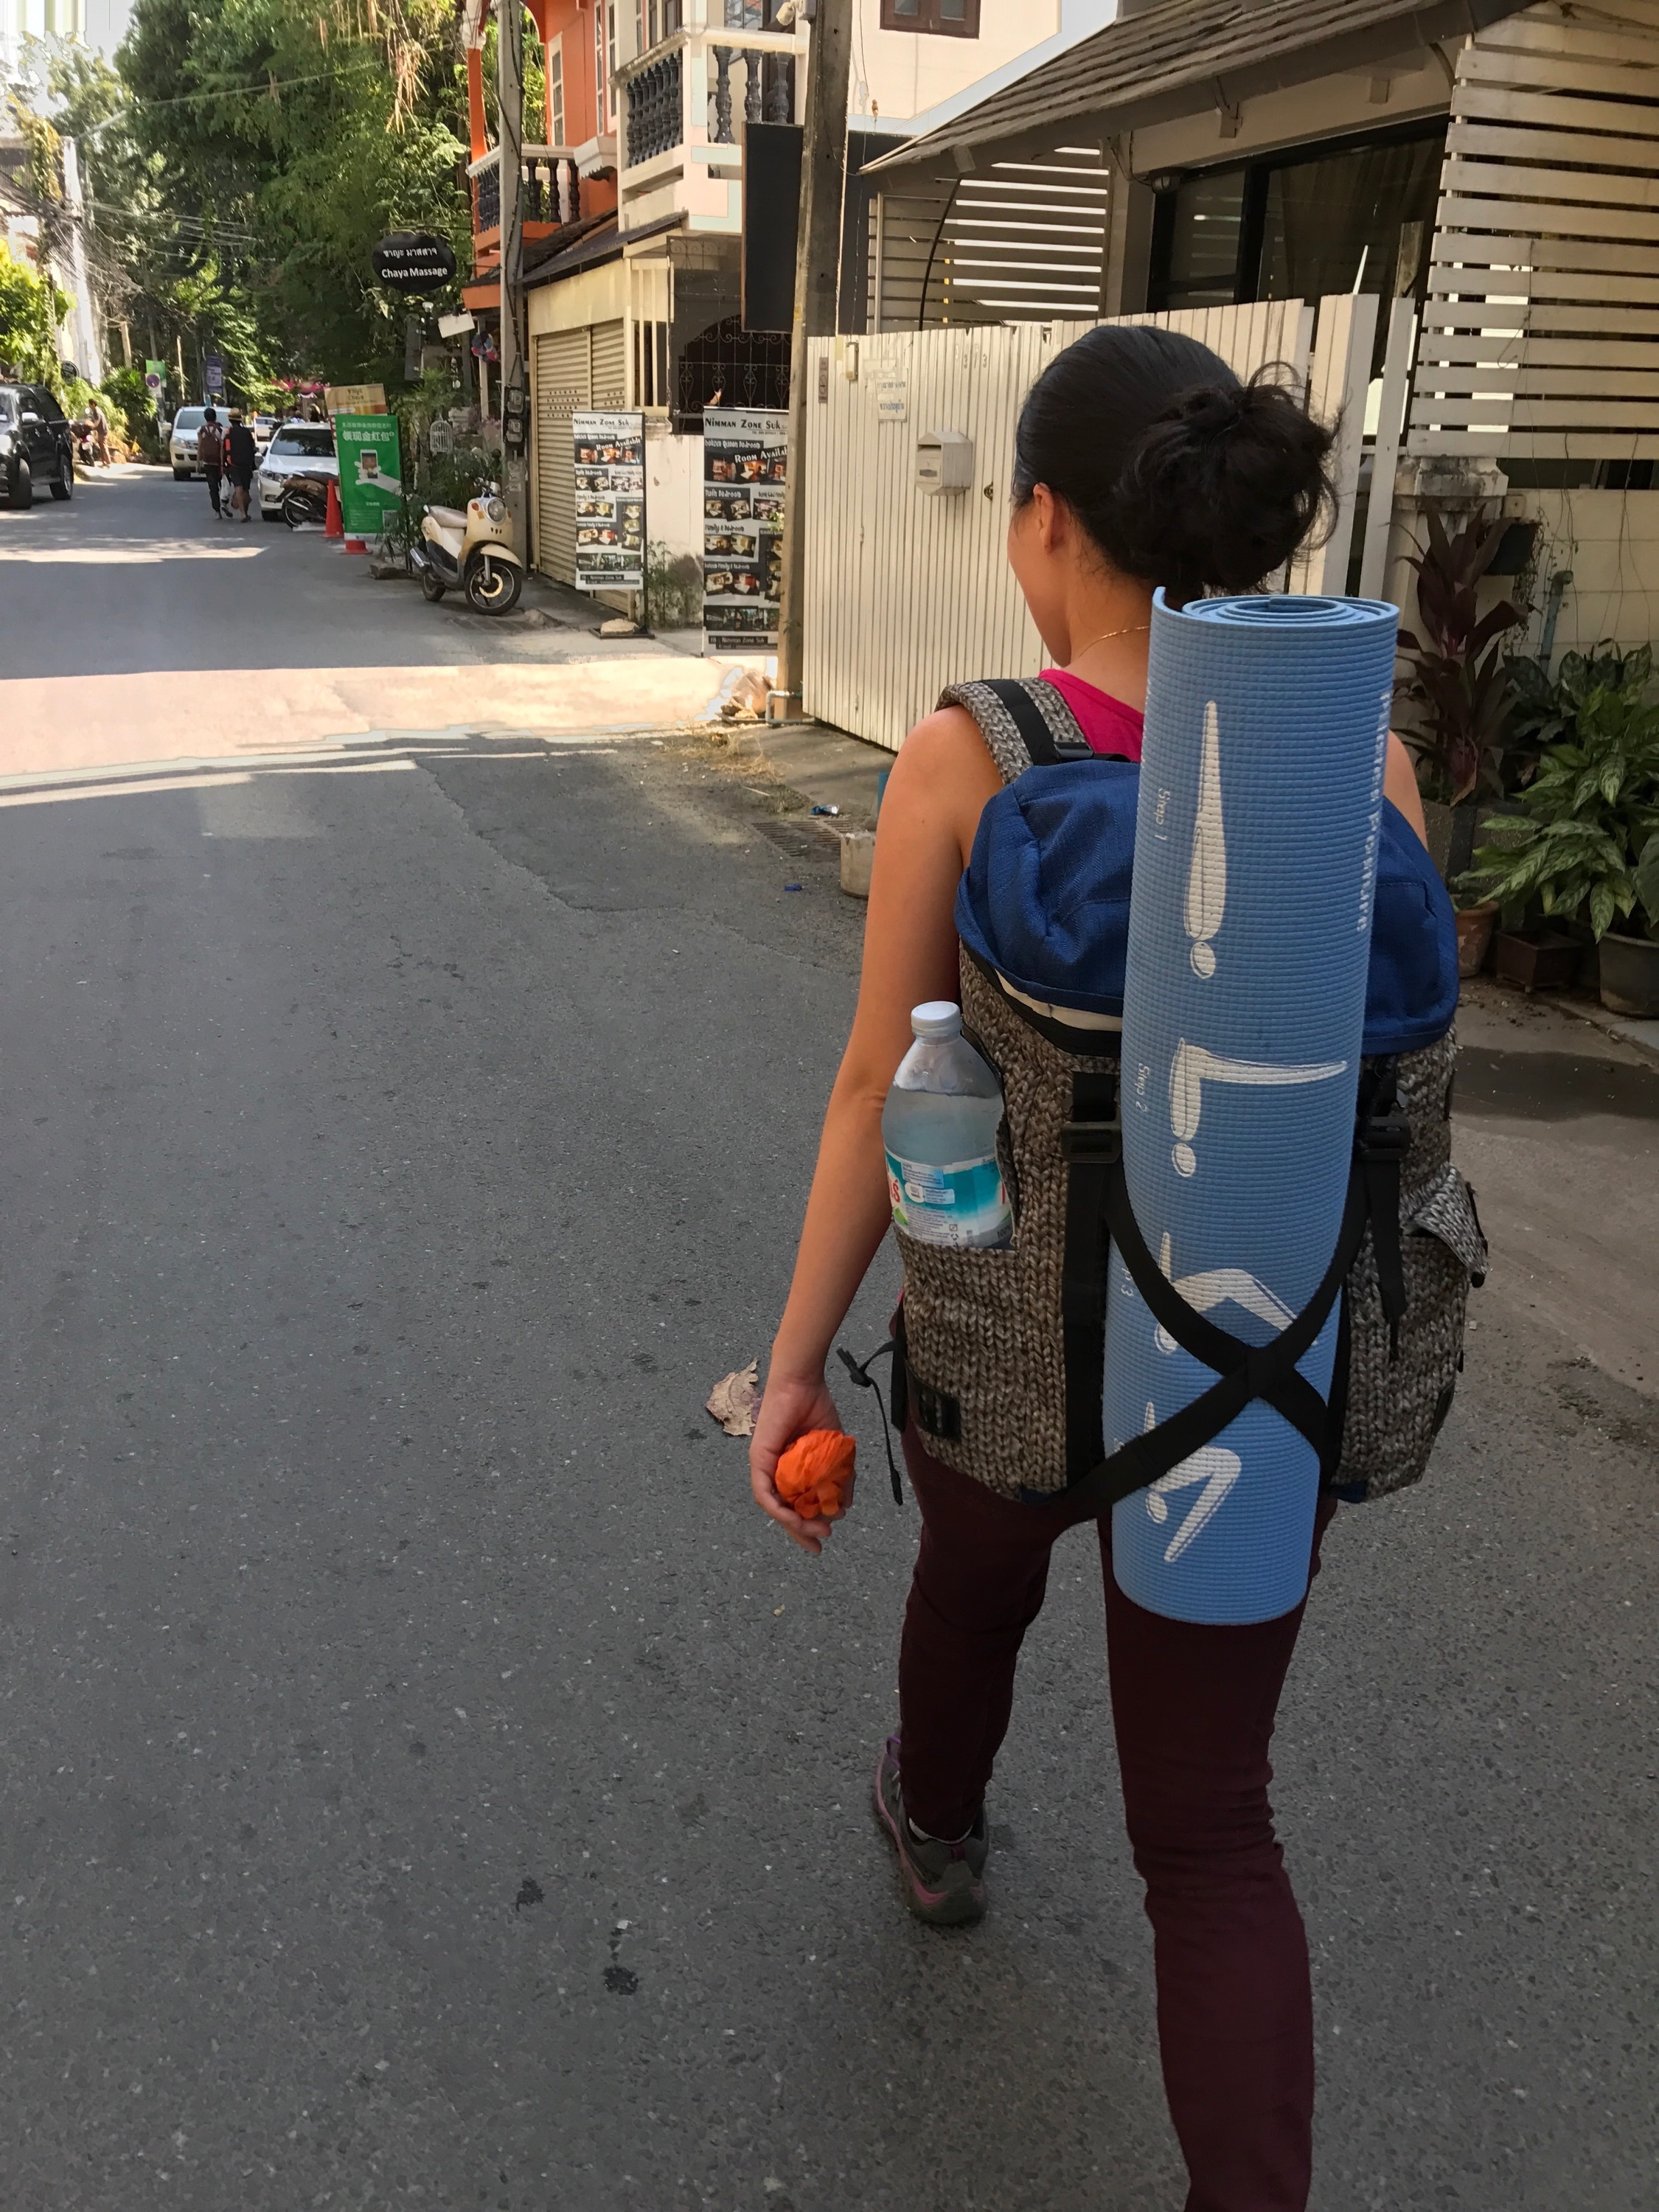 Carrying a yoga mat around...